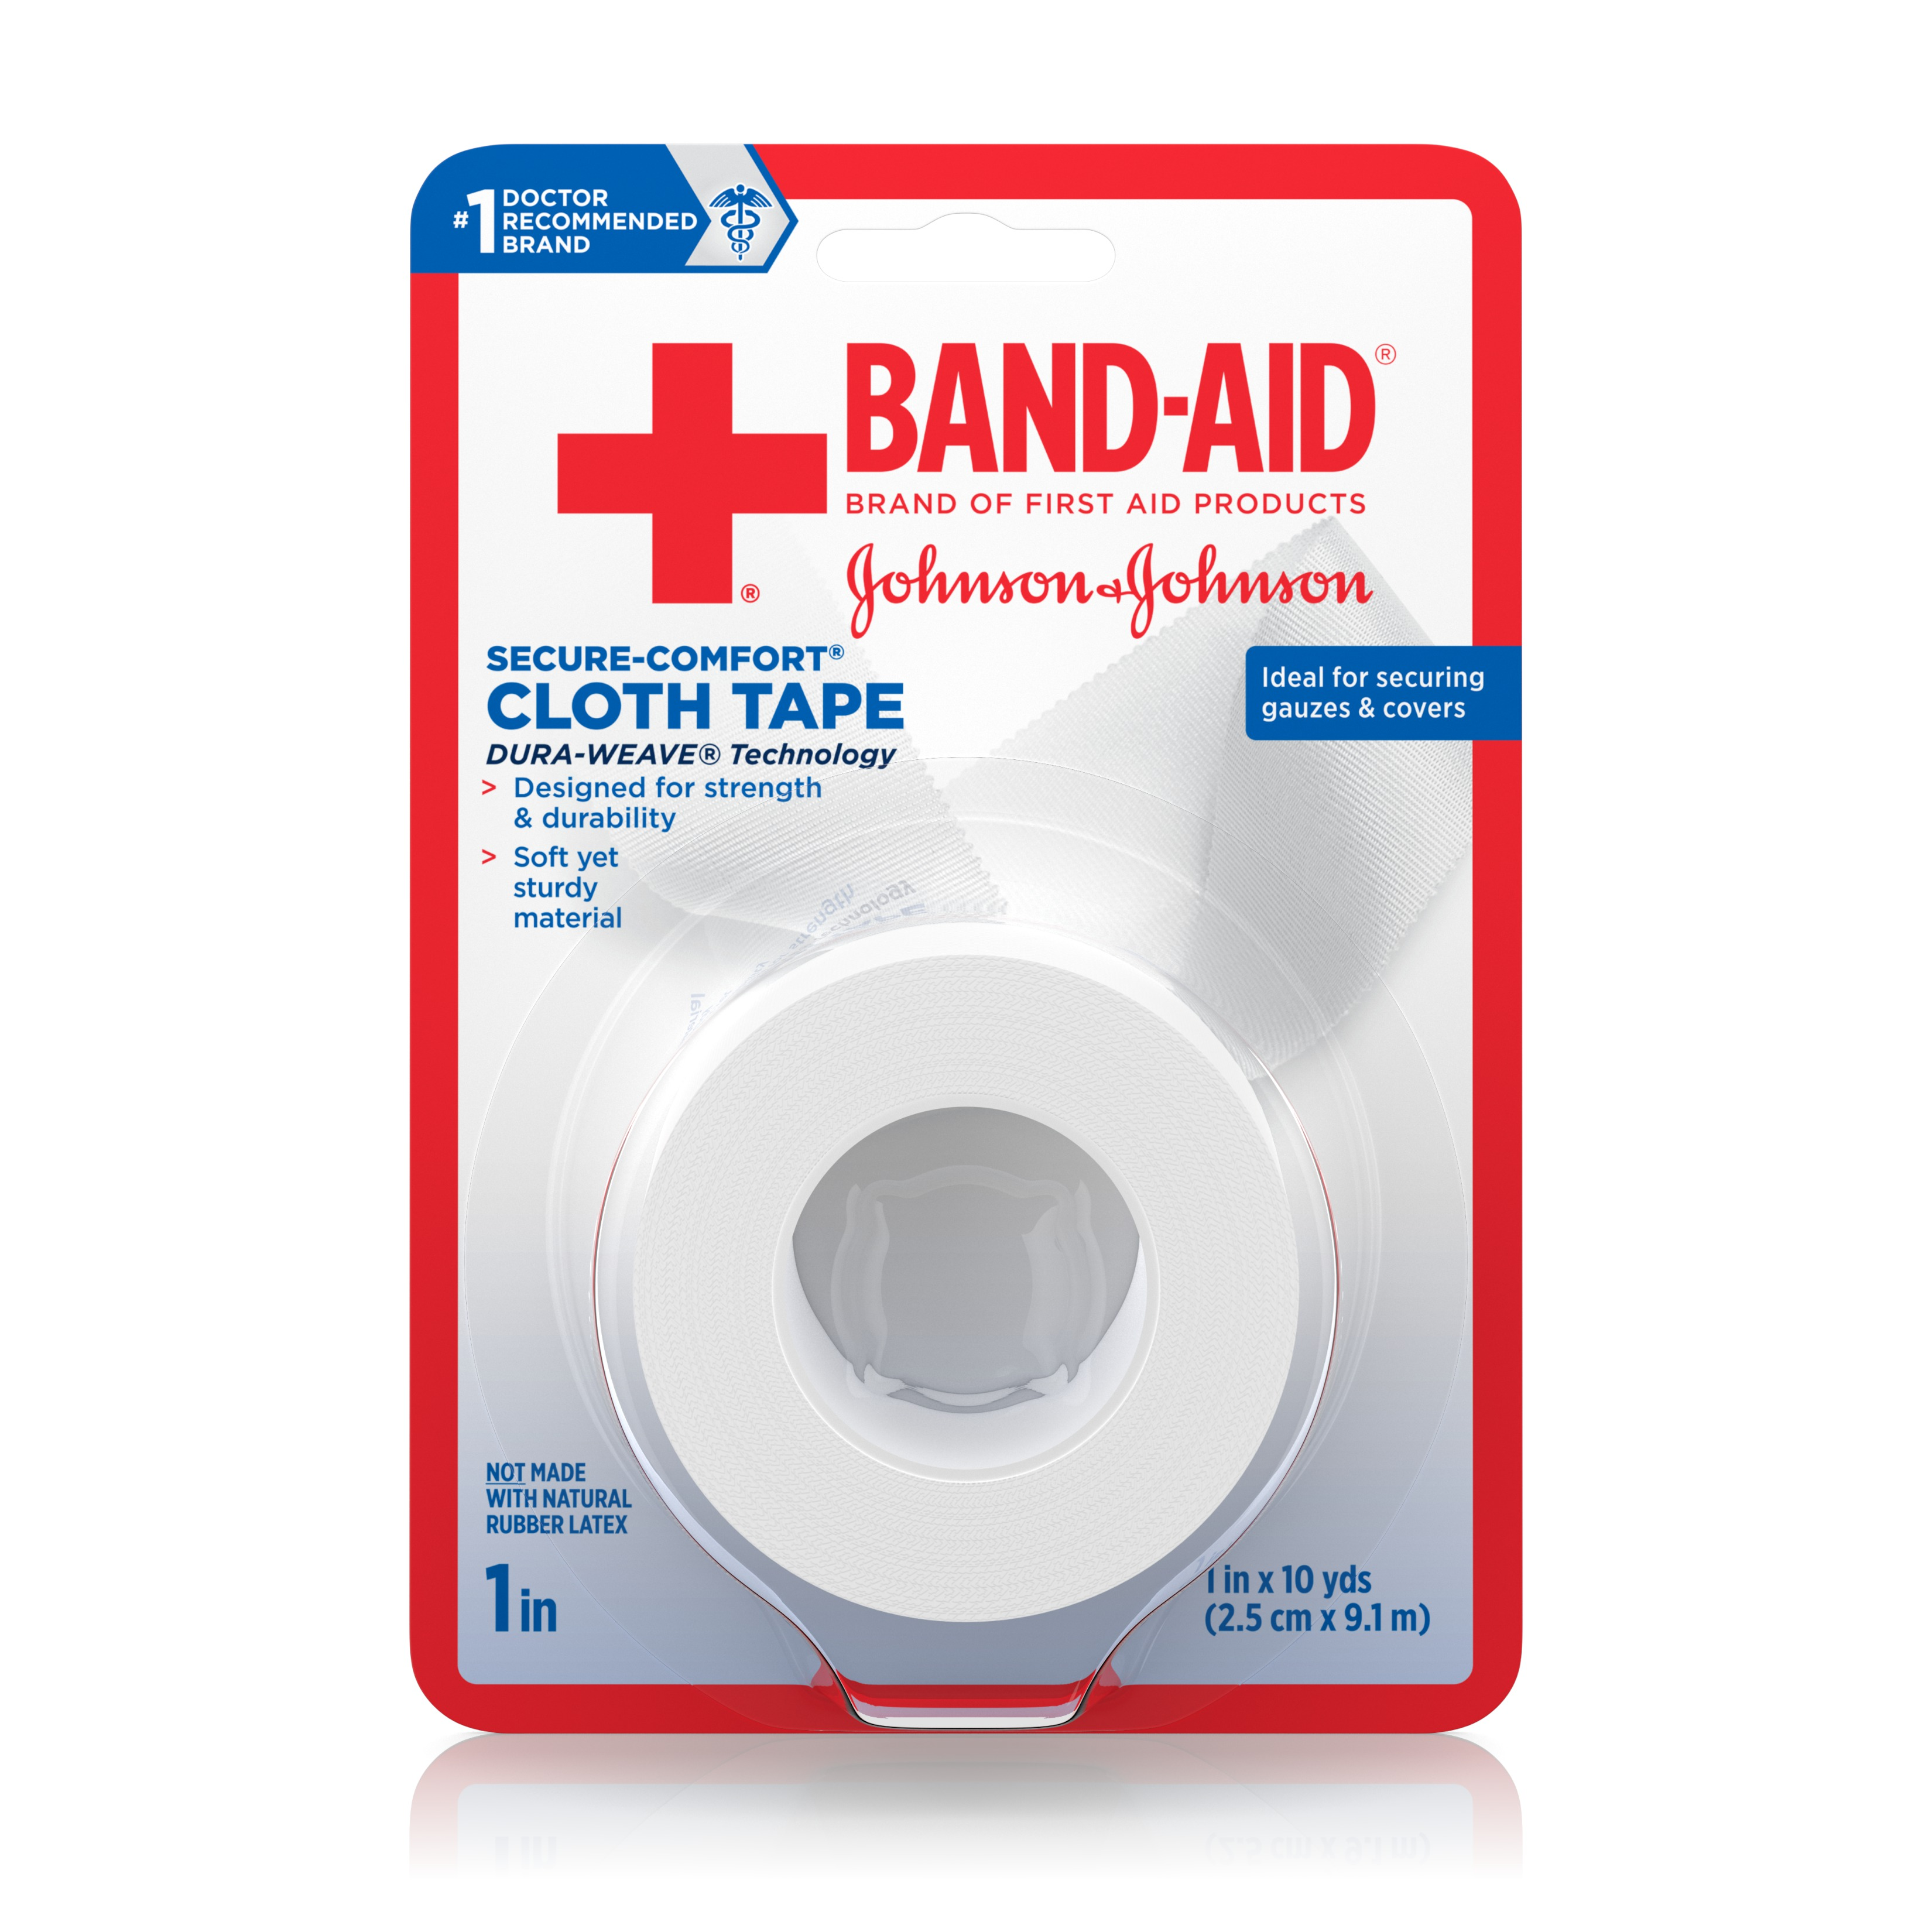 Band-Aid Brand of First Aid Products Cloth Tape for Securing Bandages, All-Purpose, 1 Inch by 10 Yards